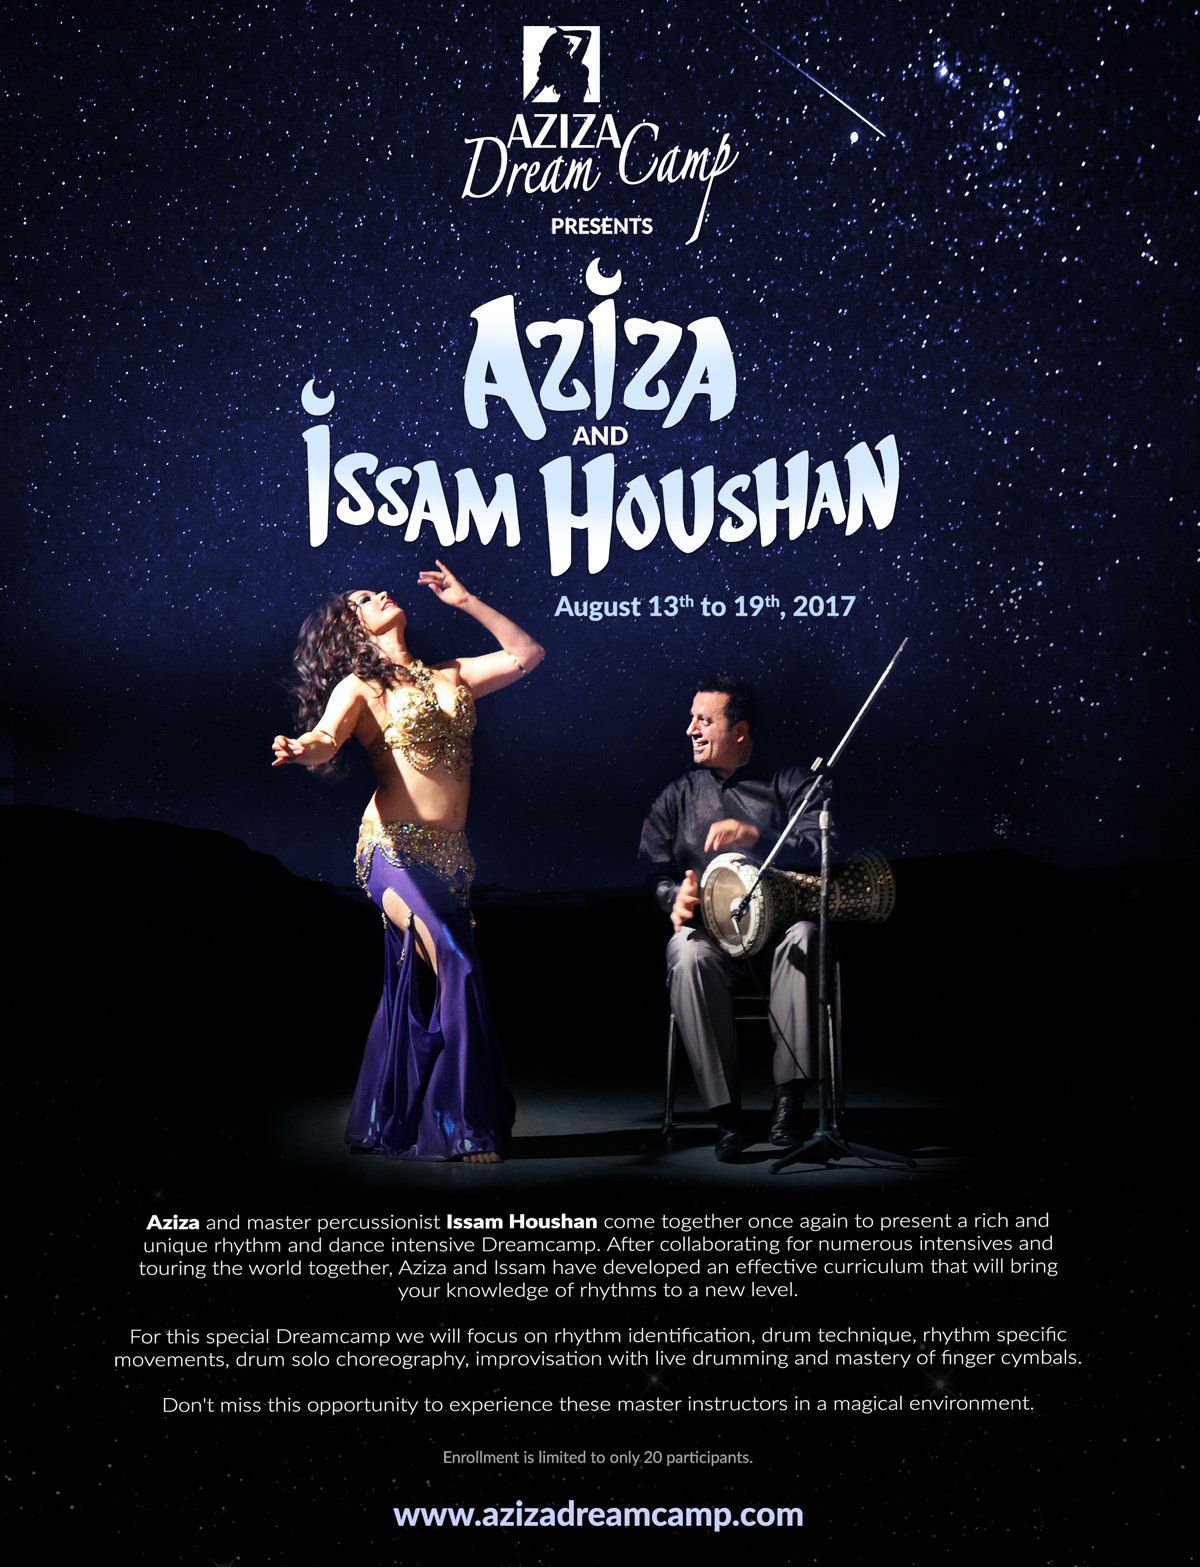 belly dance retreat aziza dreamcamp august 2017 issam houshan